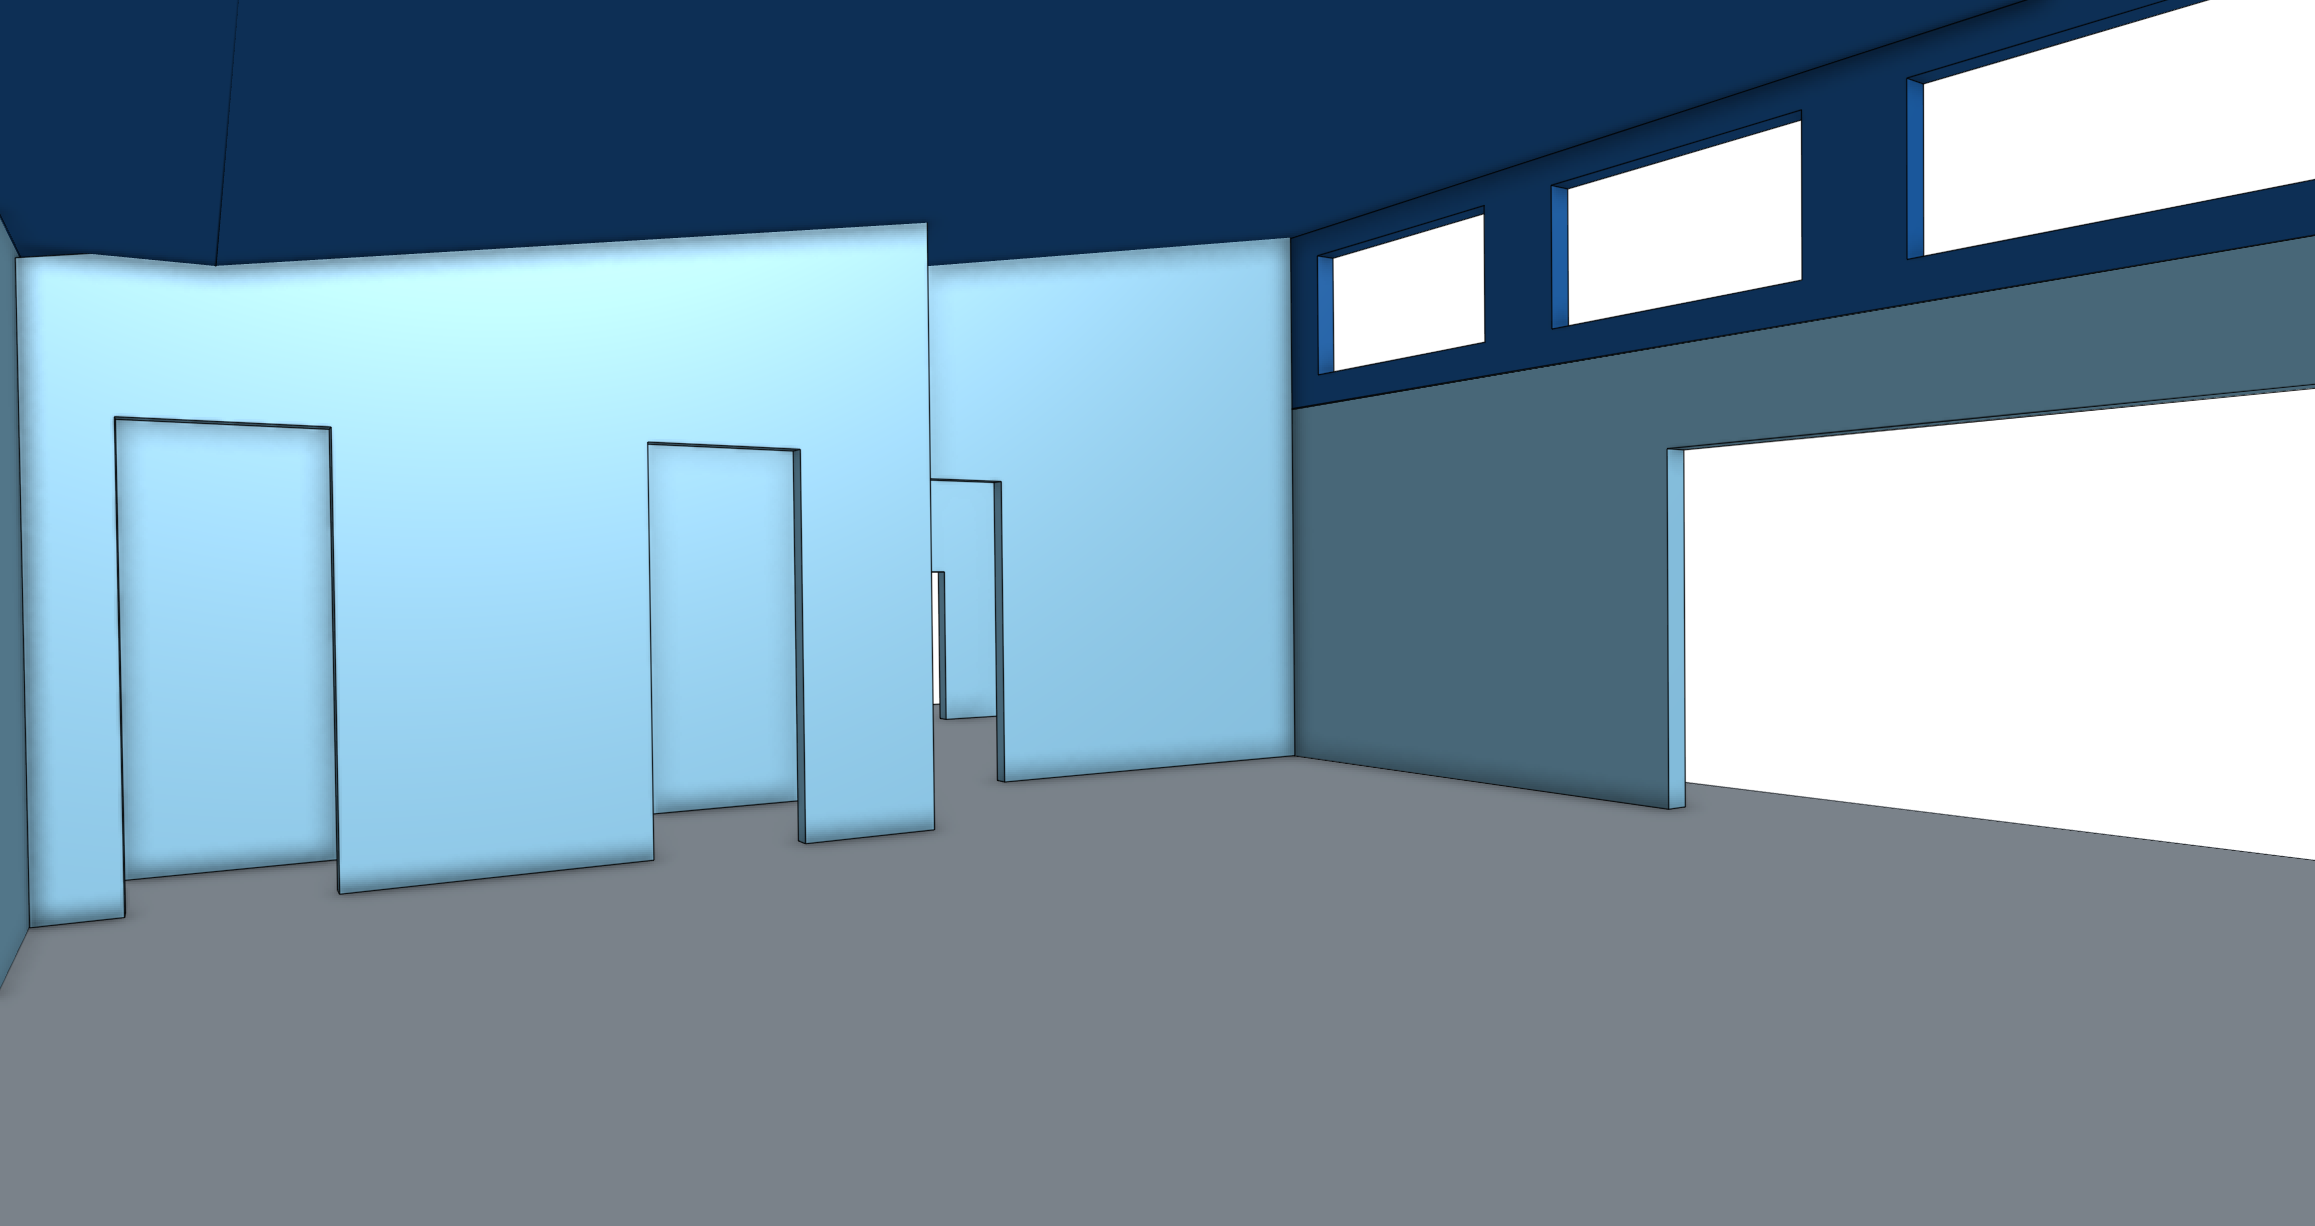 Eye-level view of garage space